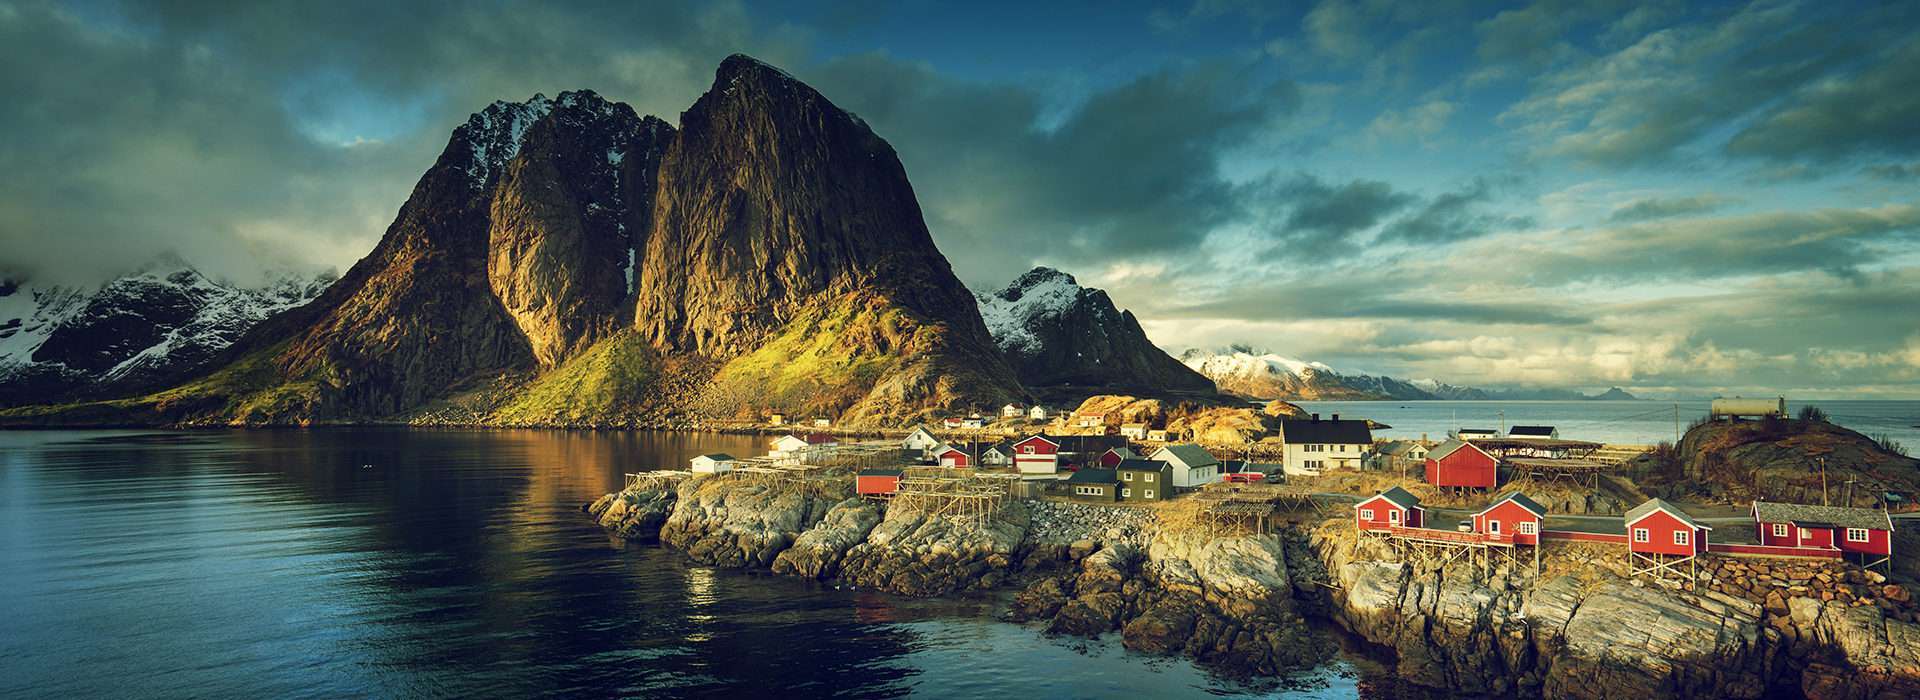 HEADER-NORWAY-COAST-1920X700